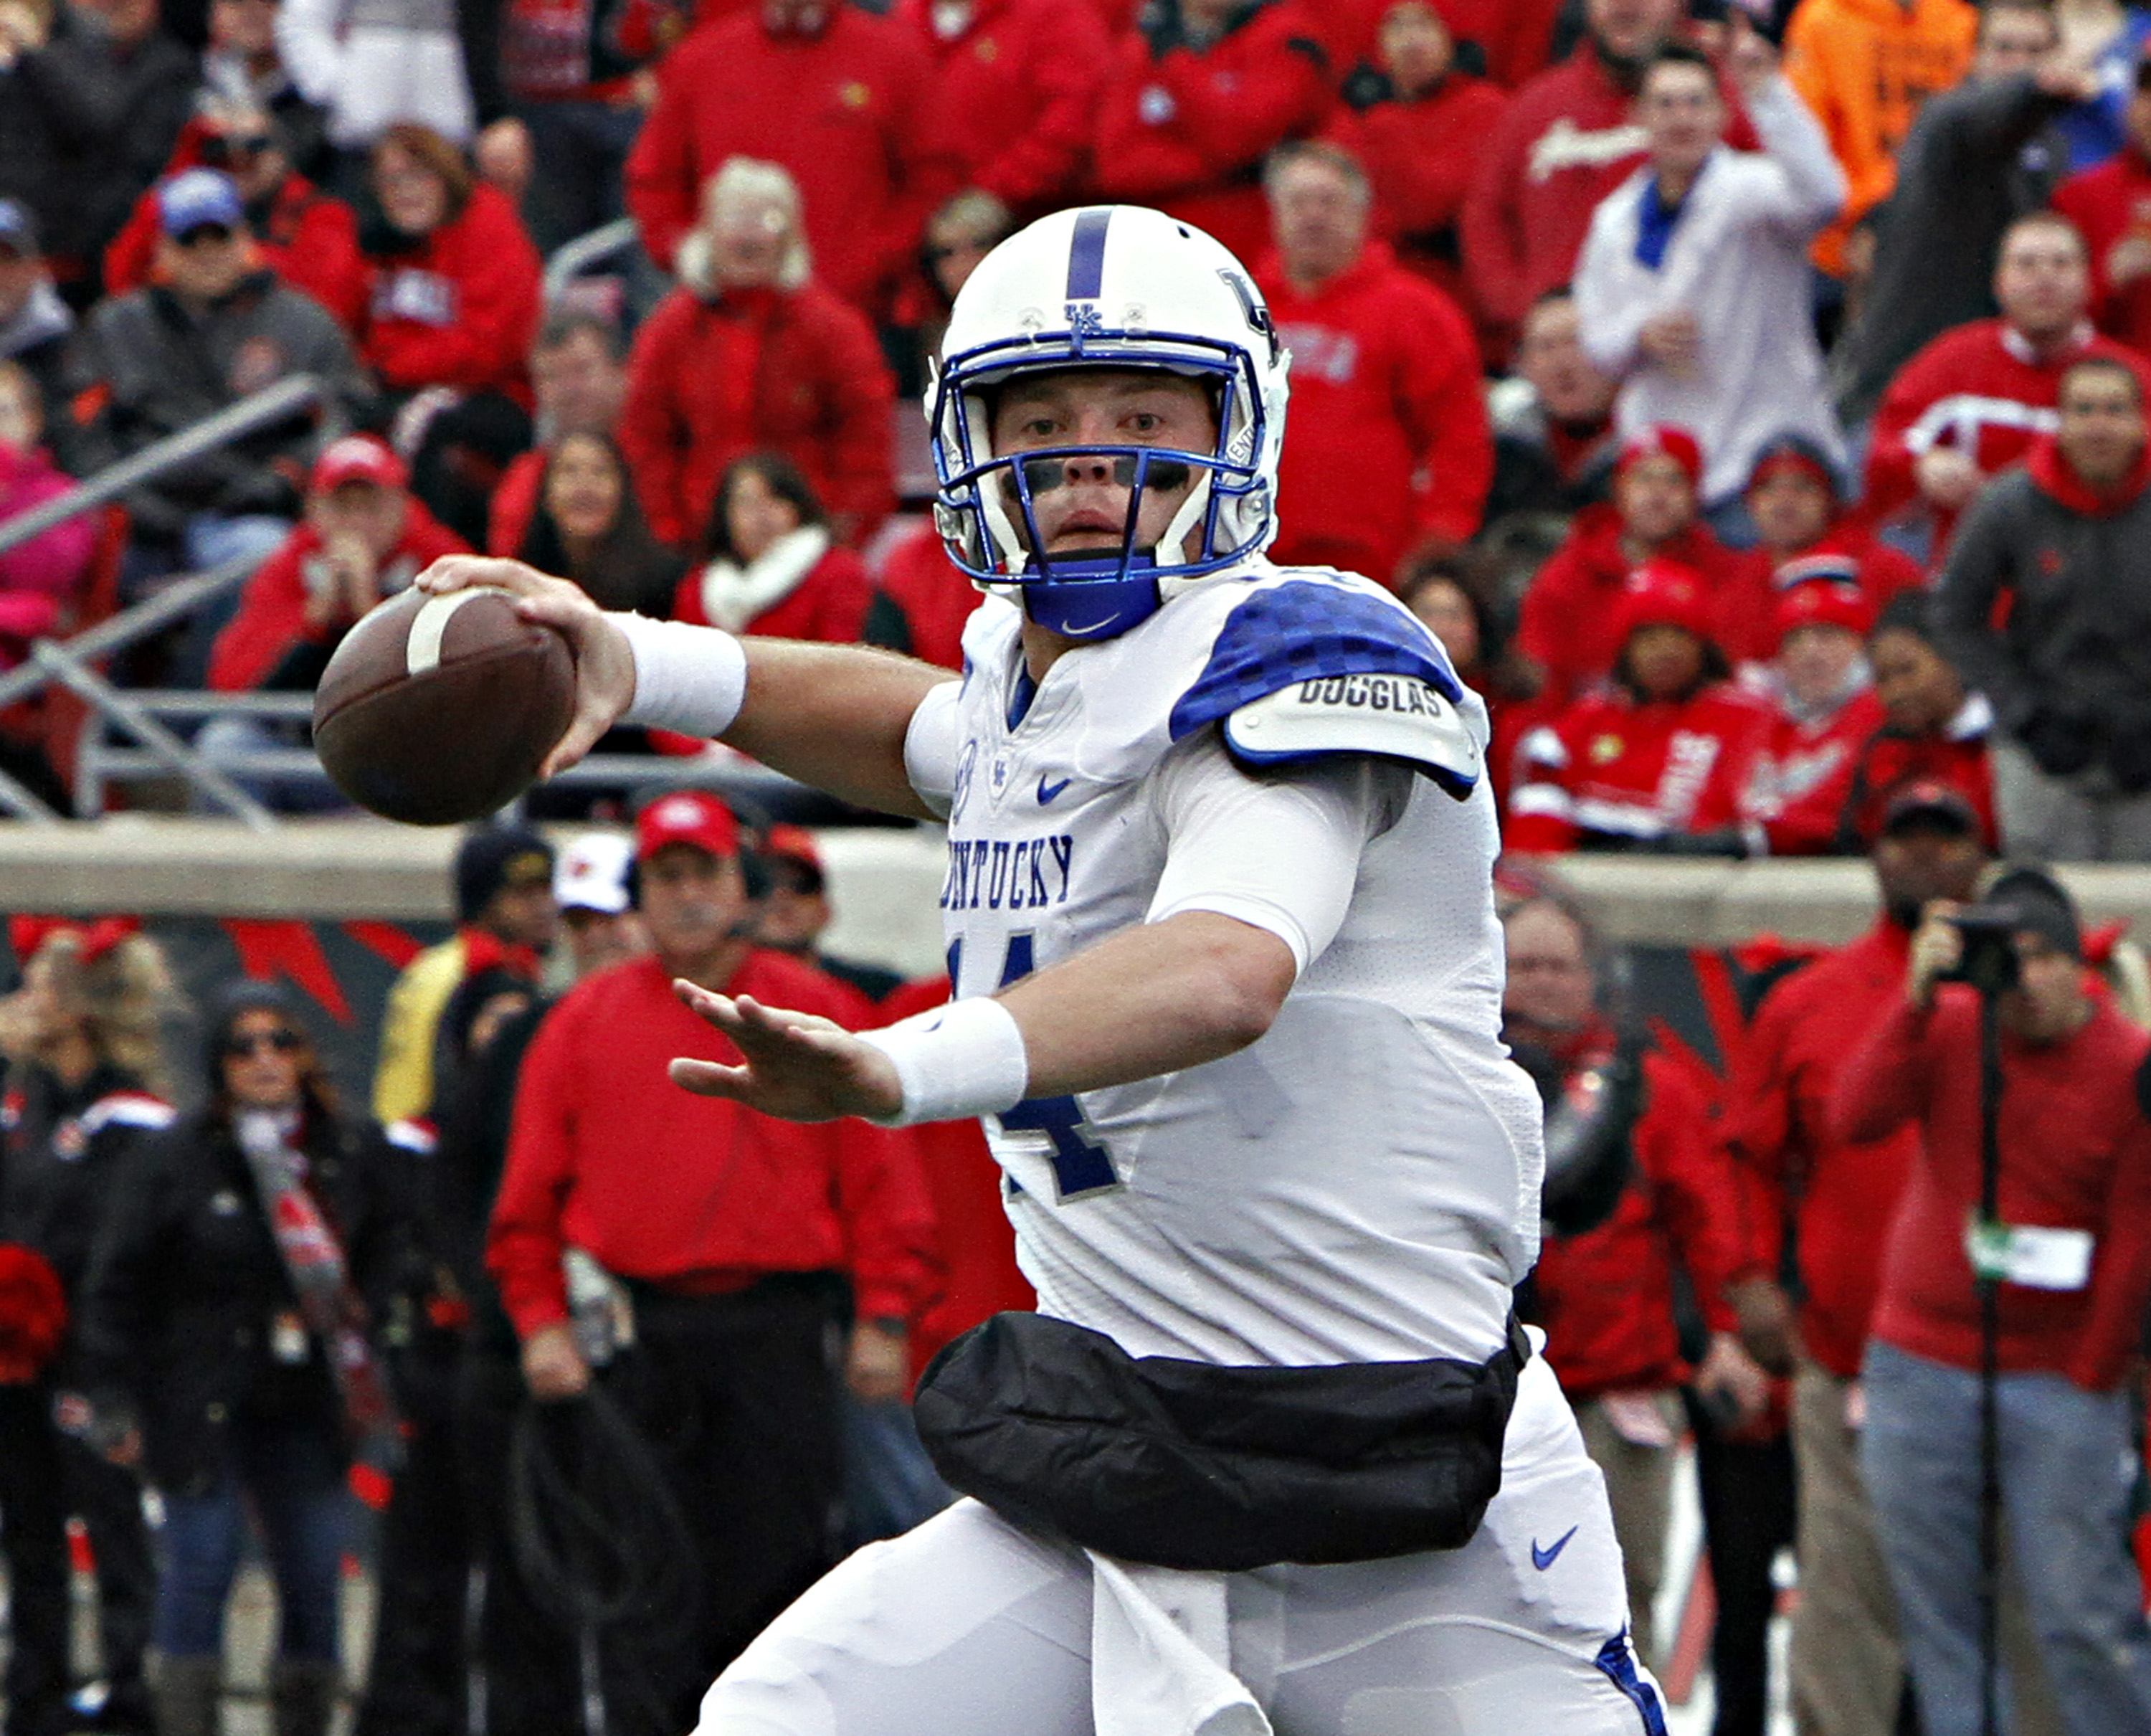 FILE - In this Nov. 29, 2014, file photo, Kentucky quarterback Patrick Towles looks to pass against rival Louisville in their NCAA college football game in Louisville, Ky. Coach Mark Stoops has named junior incumbent Patrick Towles as his starting quarter